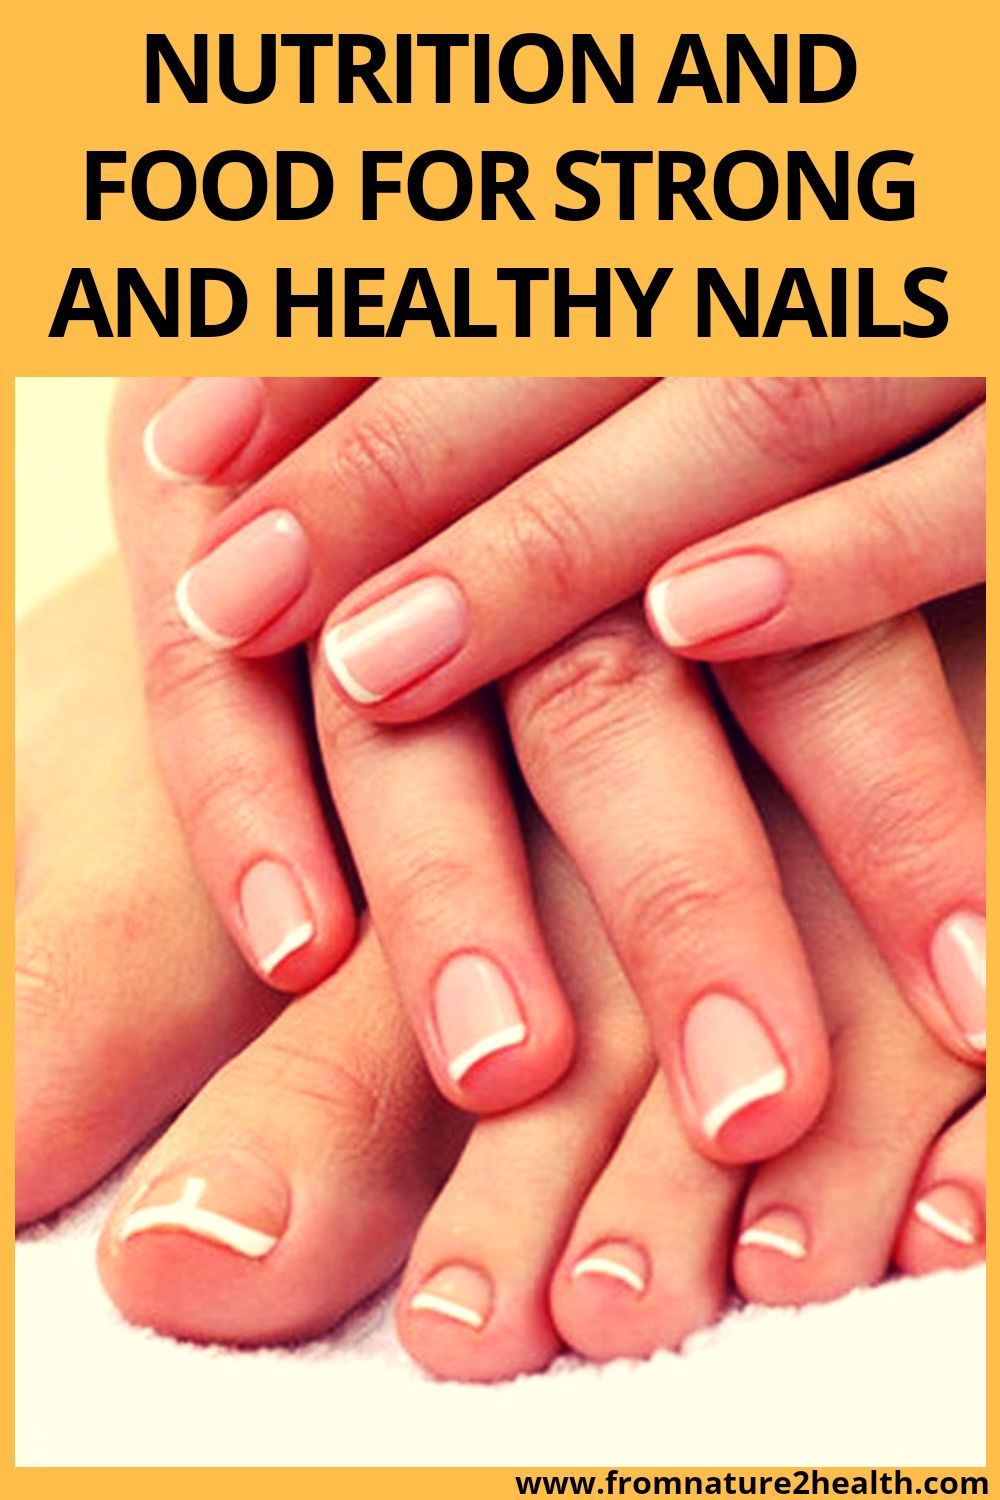 Nutrition and Food for Strong and Healthy Nails